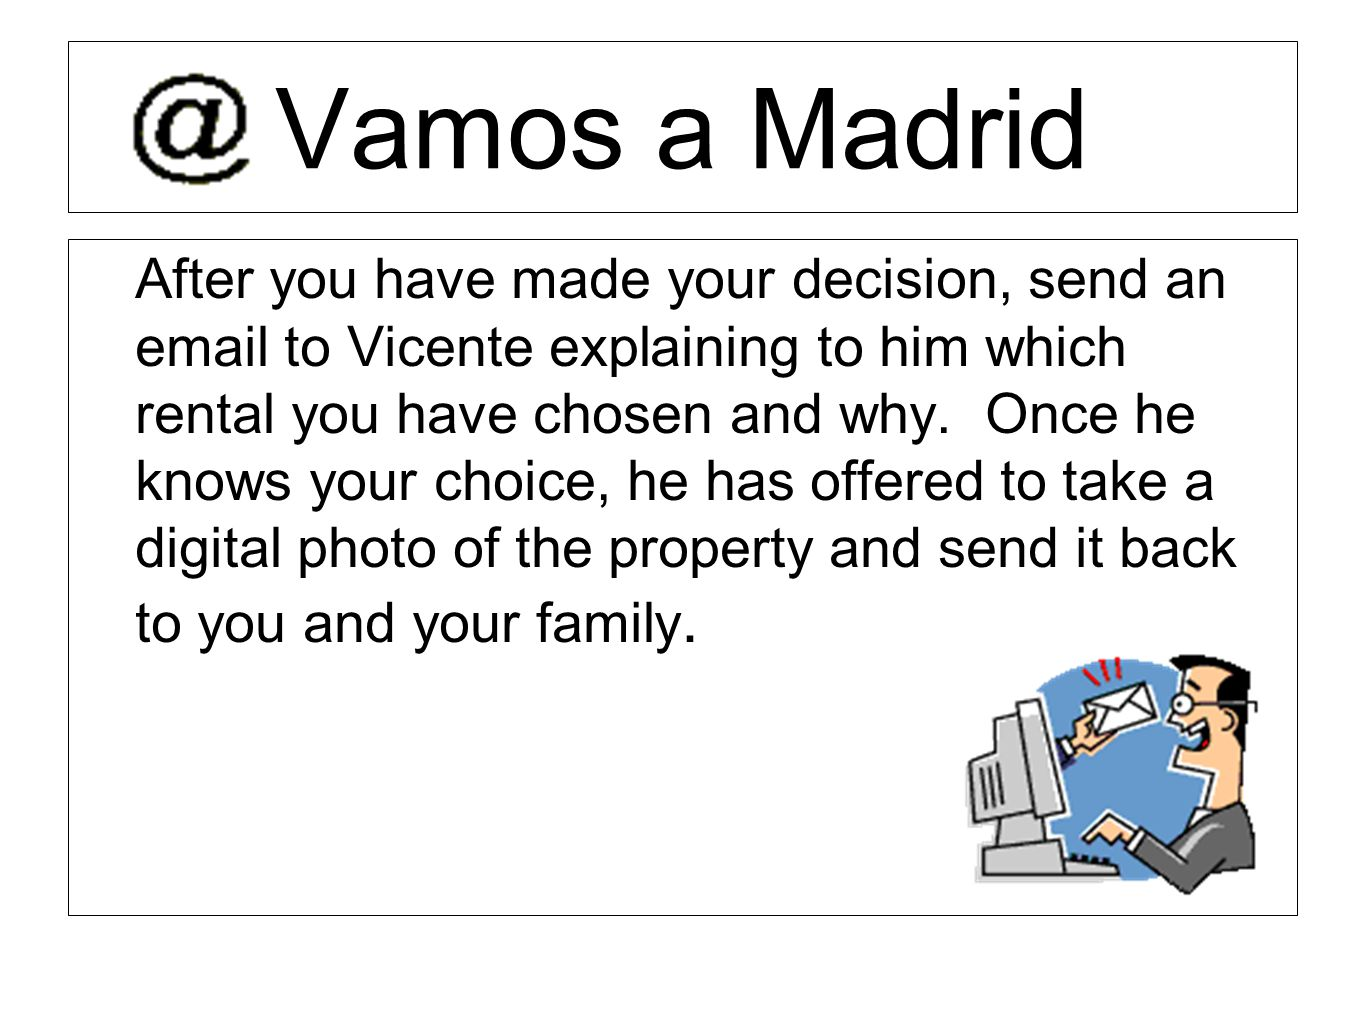 Vamos a Madrid After you have made your decision, send an email to Vicente explaining to him which rental you have chosen and why. Once he knows your